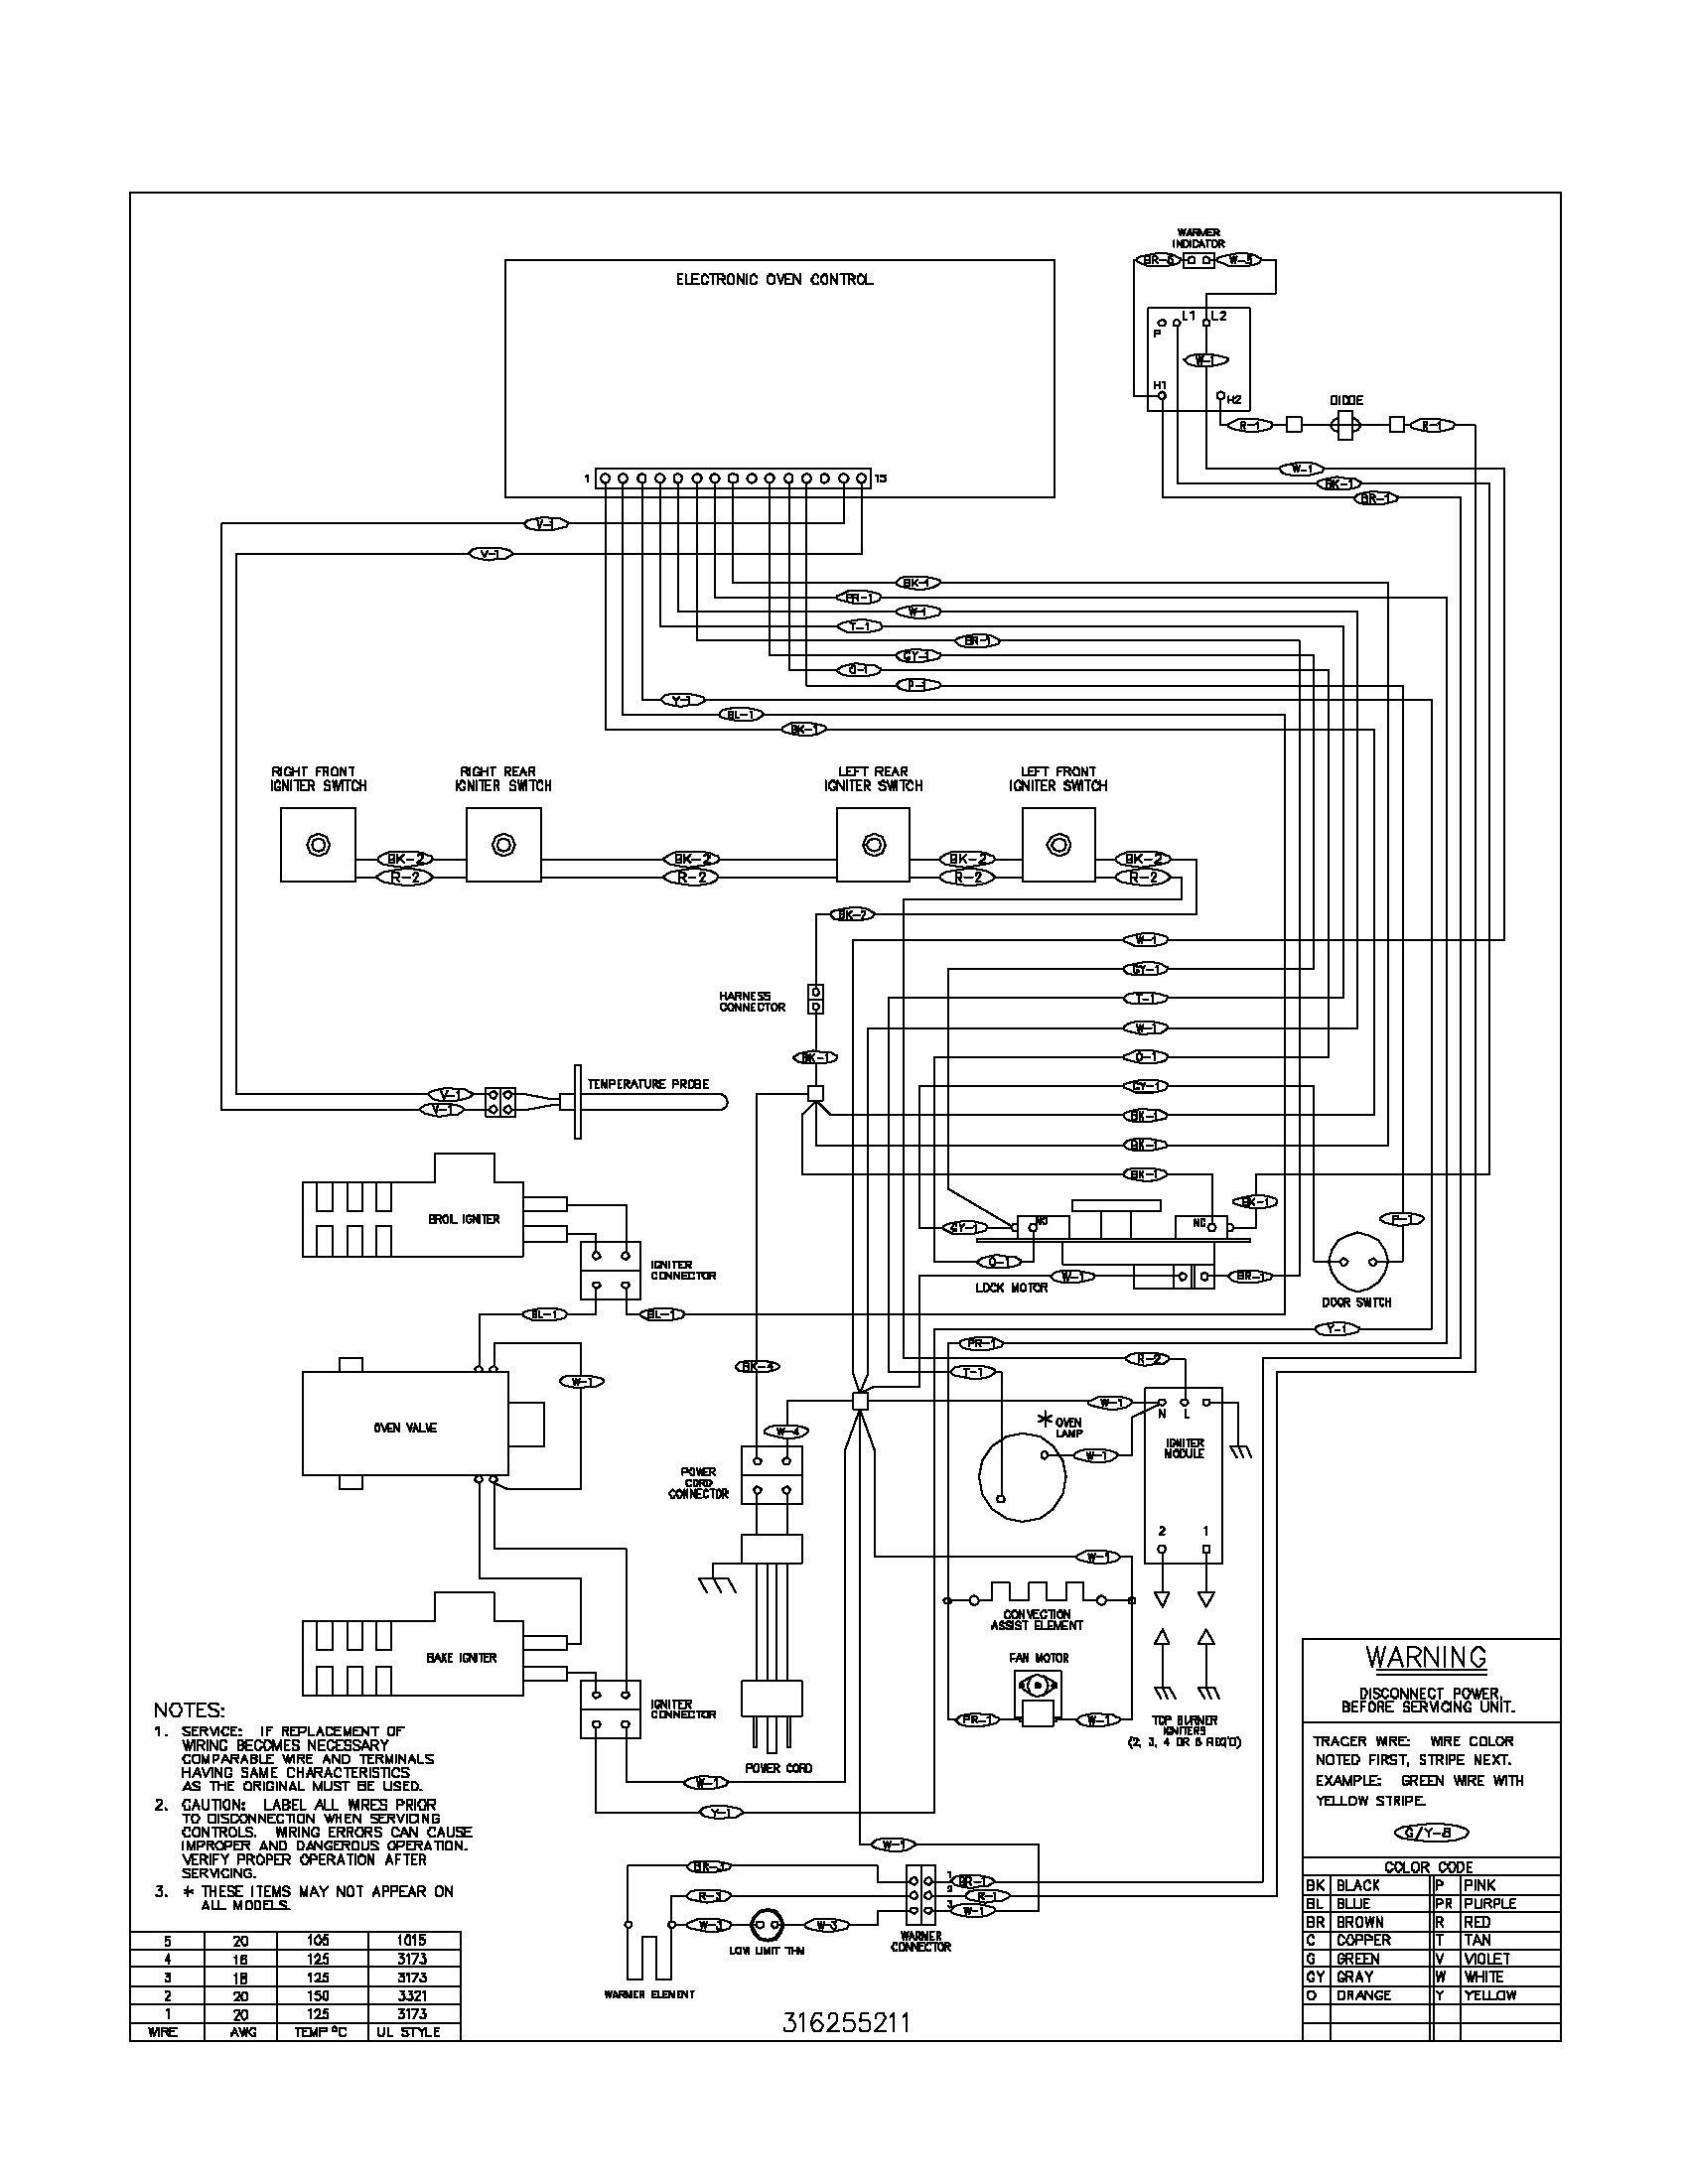 Unique Wiring Diagram For Electric Stove Outlet Diagram